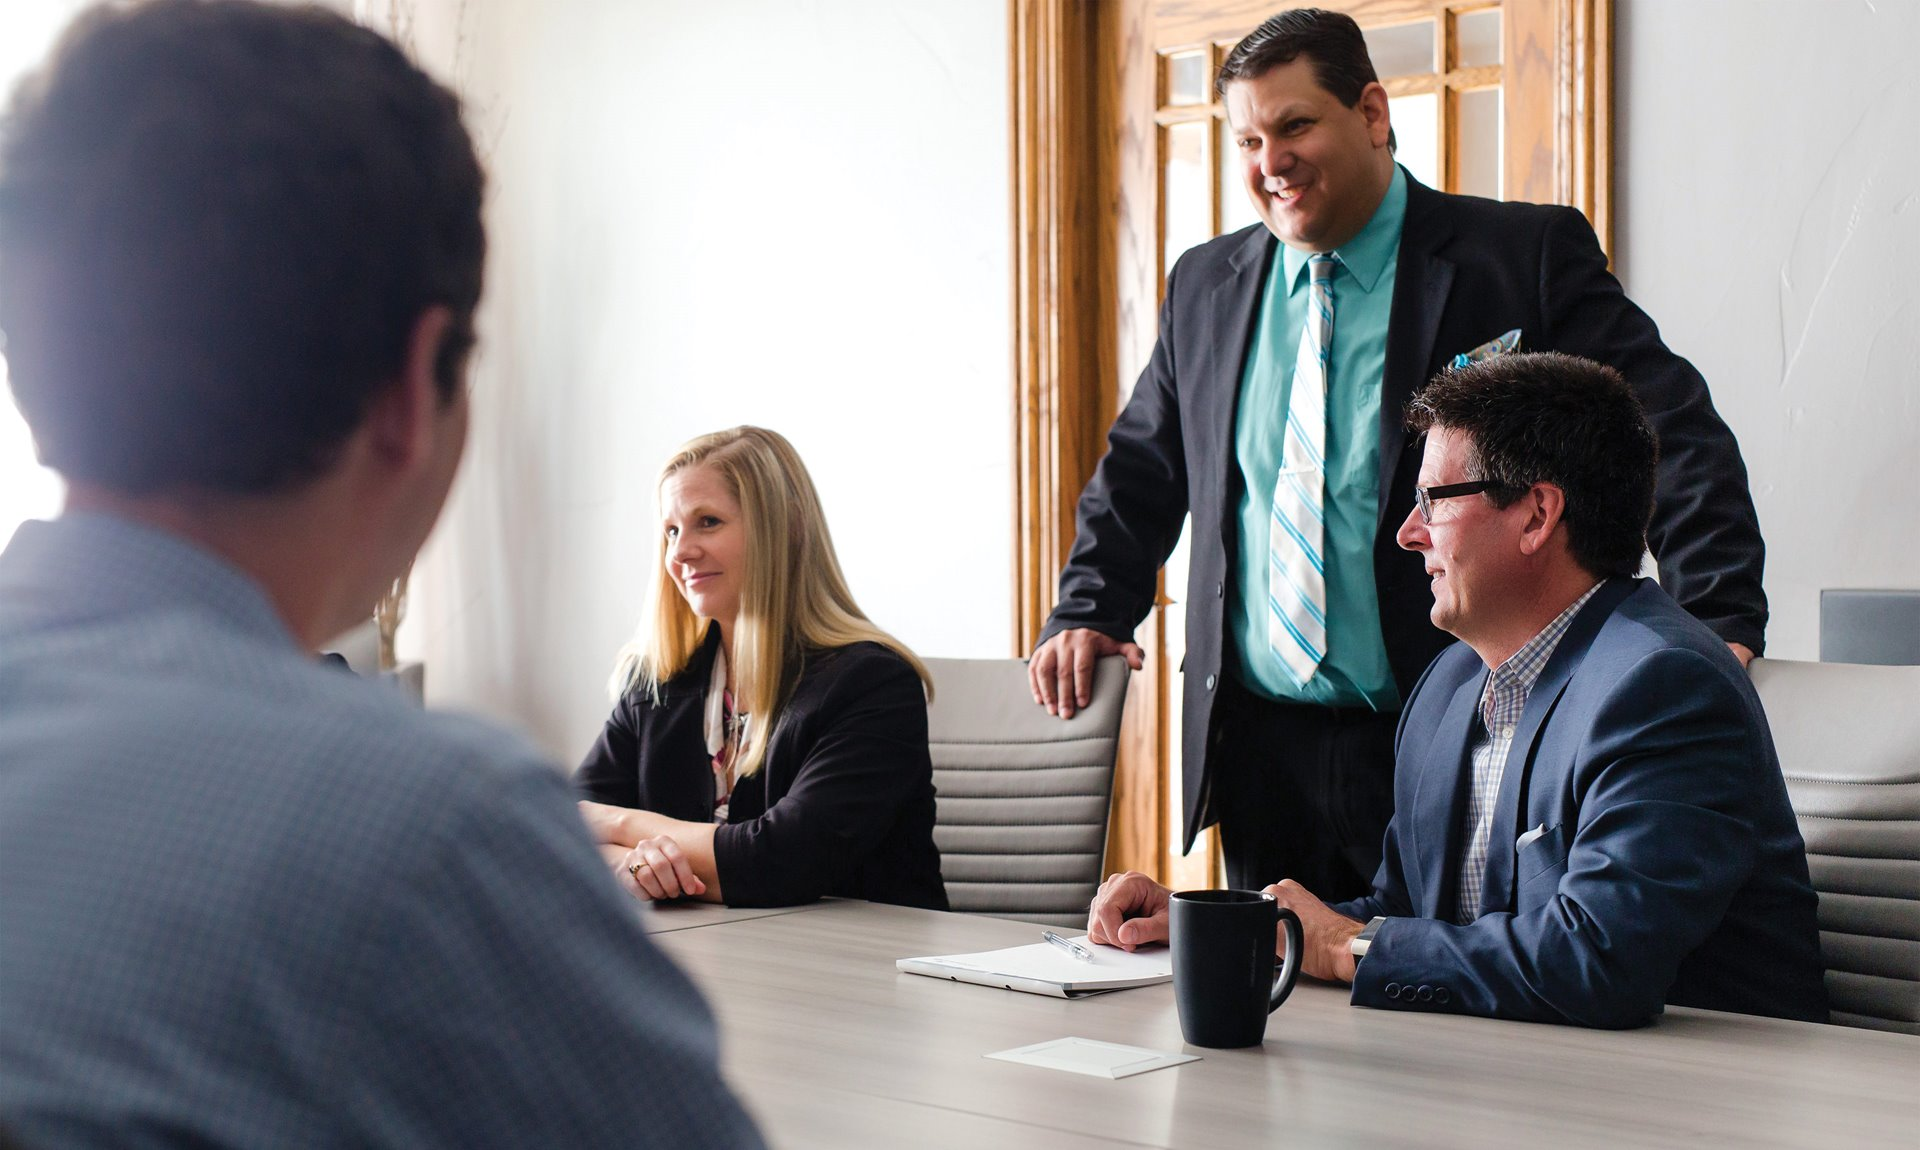 slider image - Attorneys at conference table